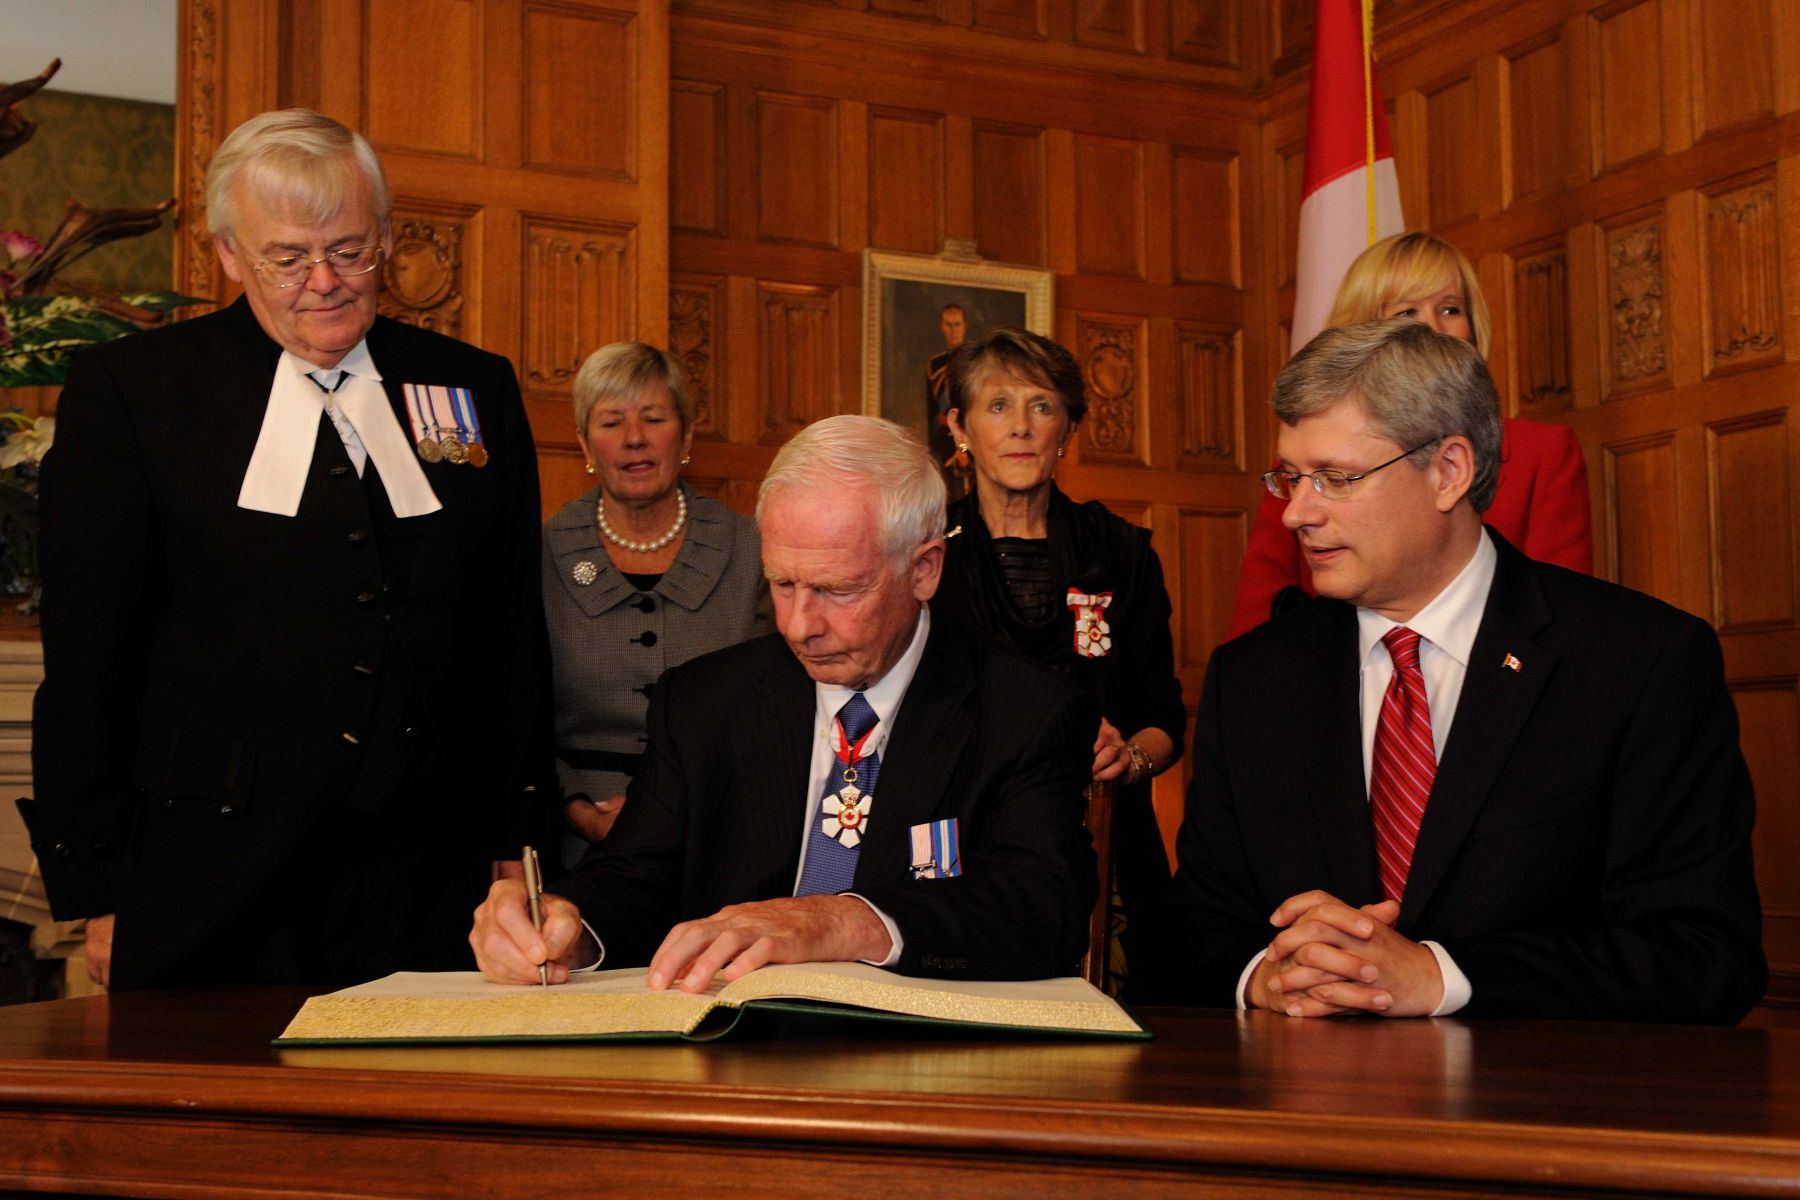 The Governor General signed the proclamation marking his accession.